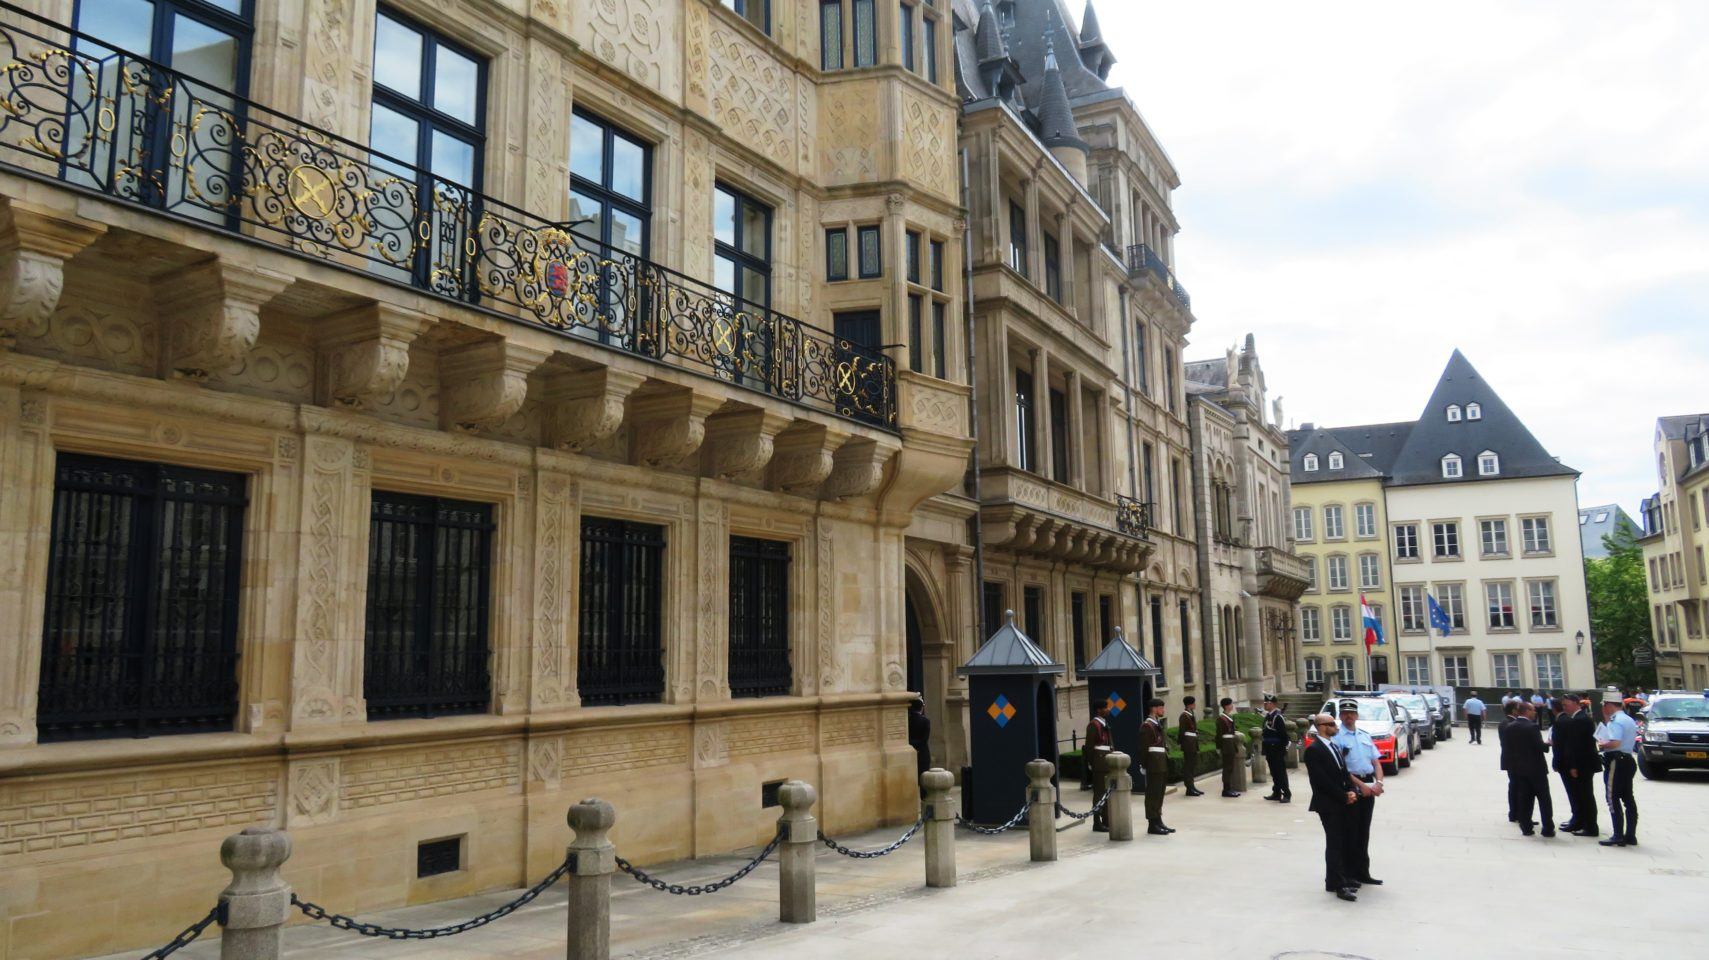 Grand Ducal Palace of Luxembourg in Luxembourg City, Luxembourg